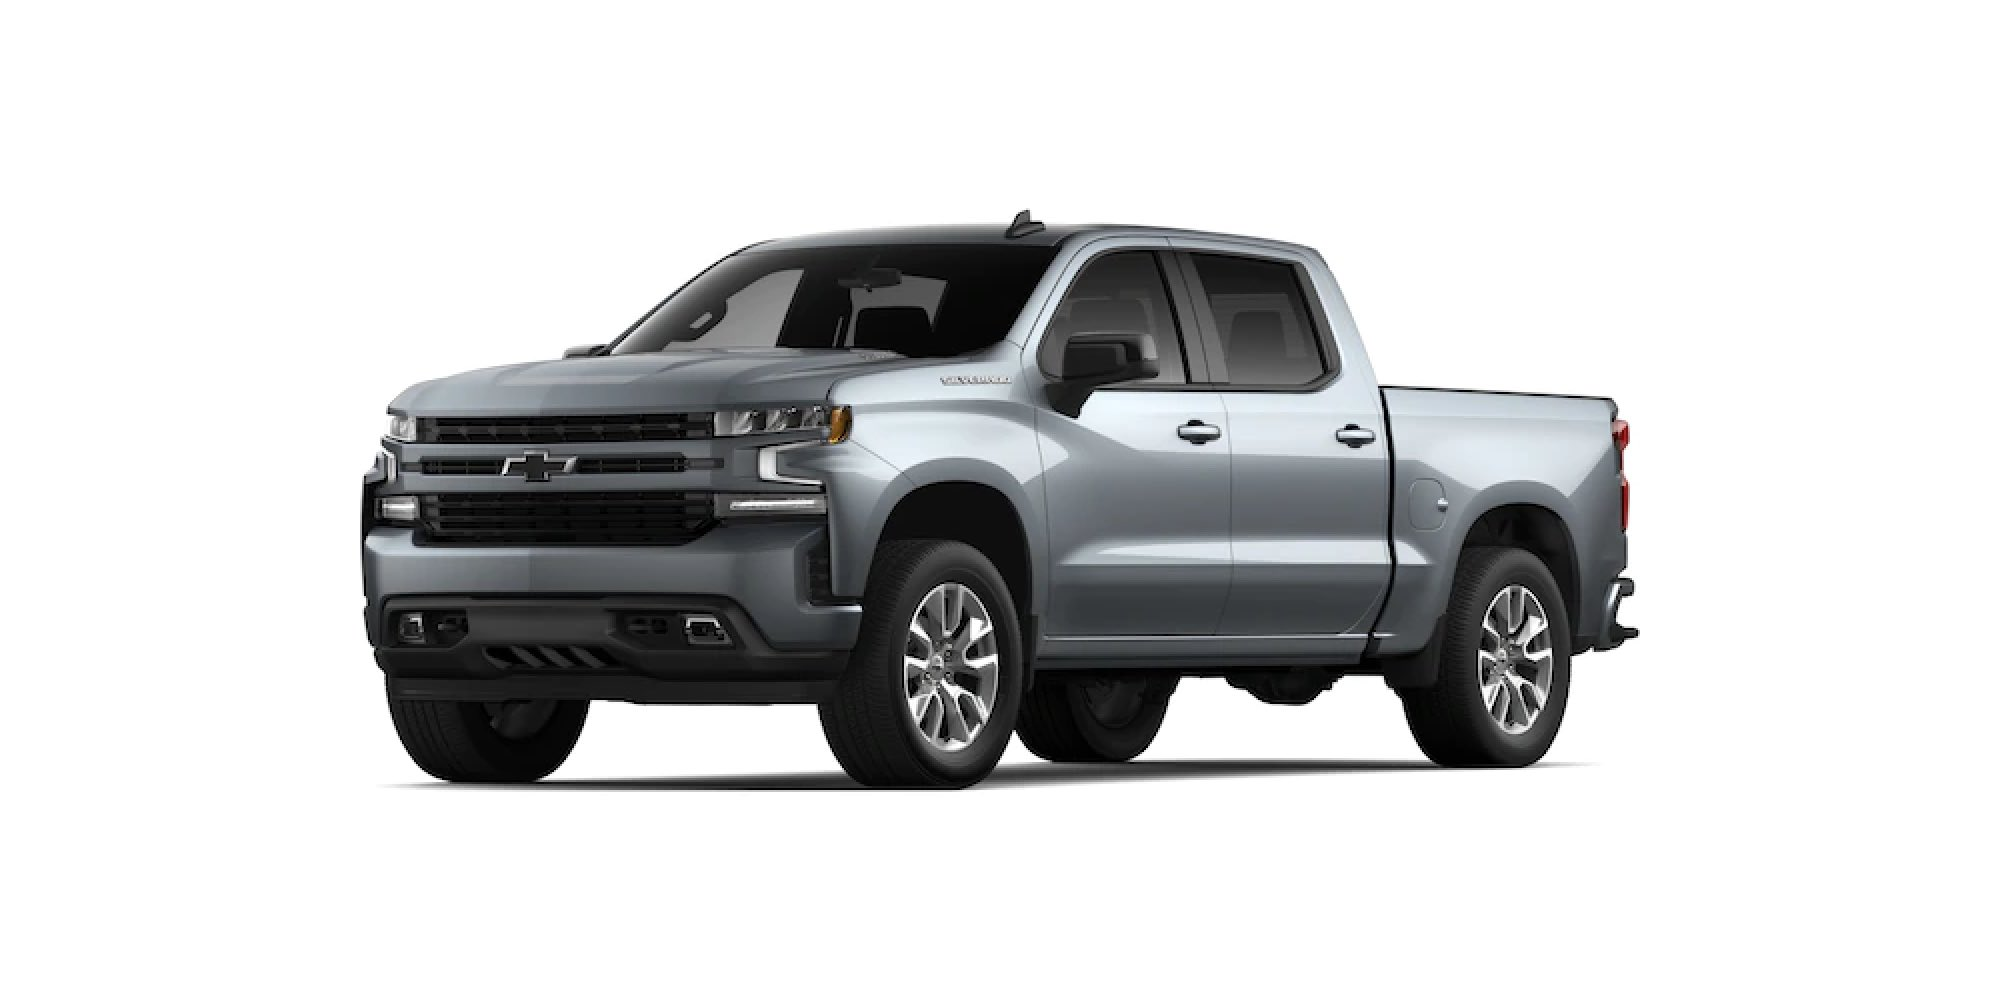 2021 Chevy Silverado 1500 in SATIN STEEL METALLIC